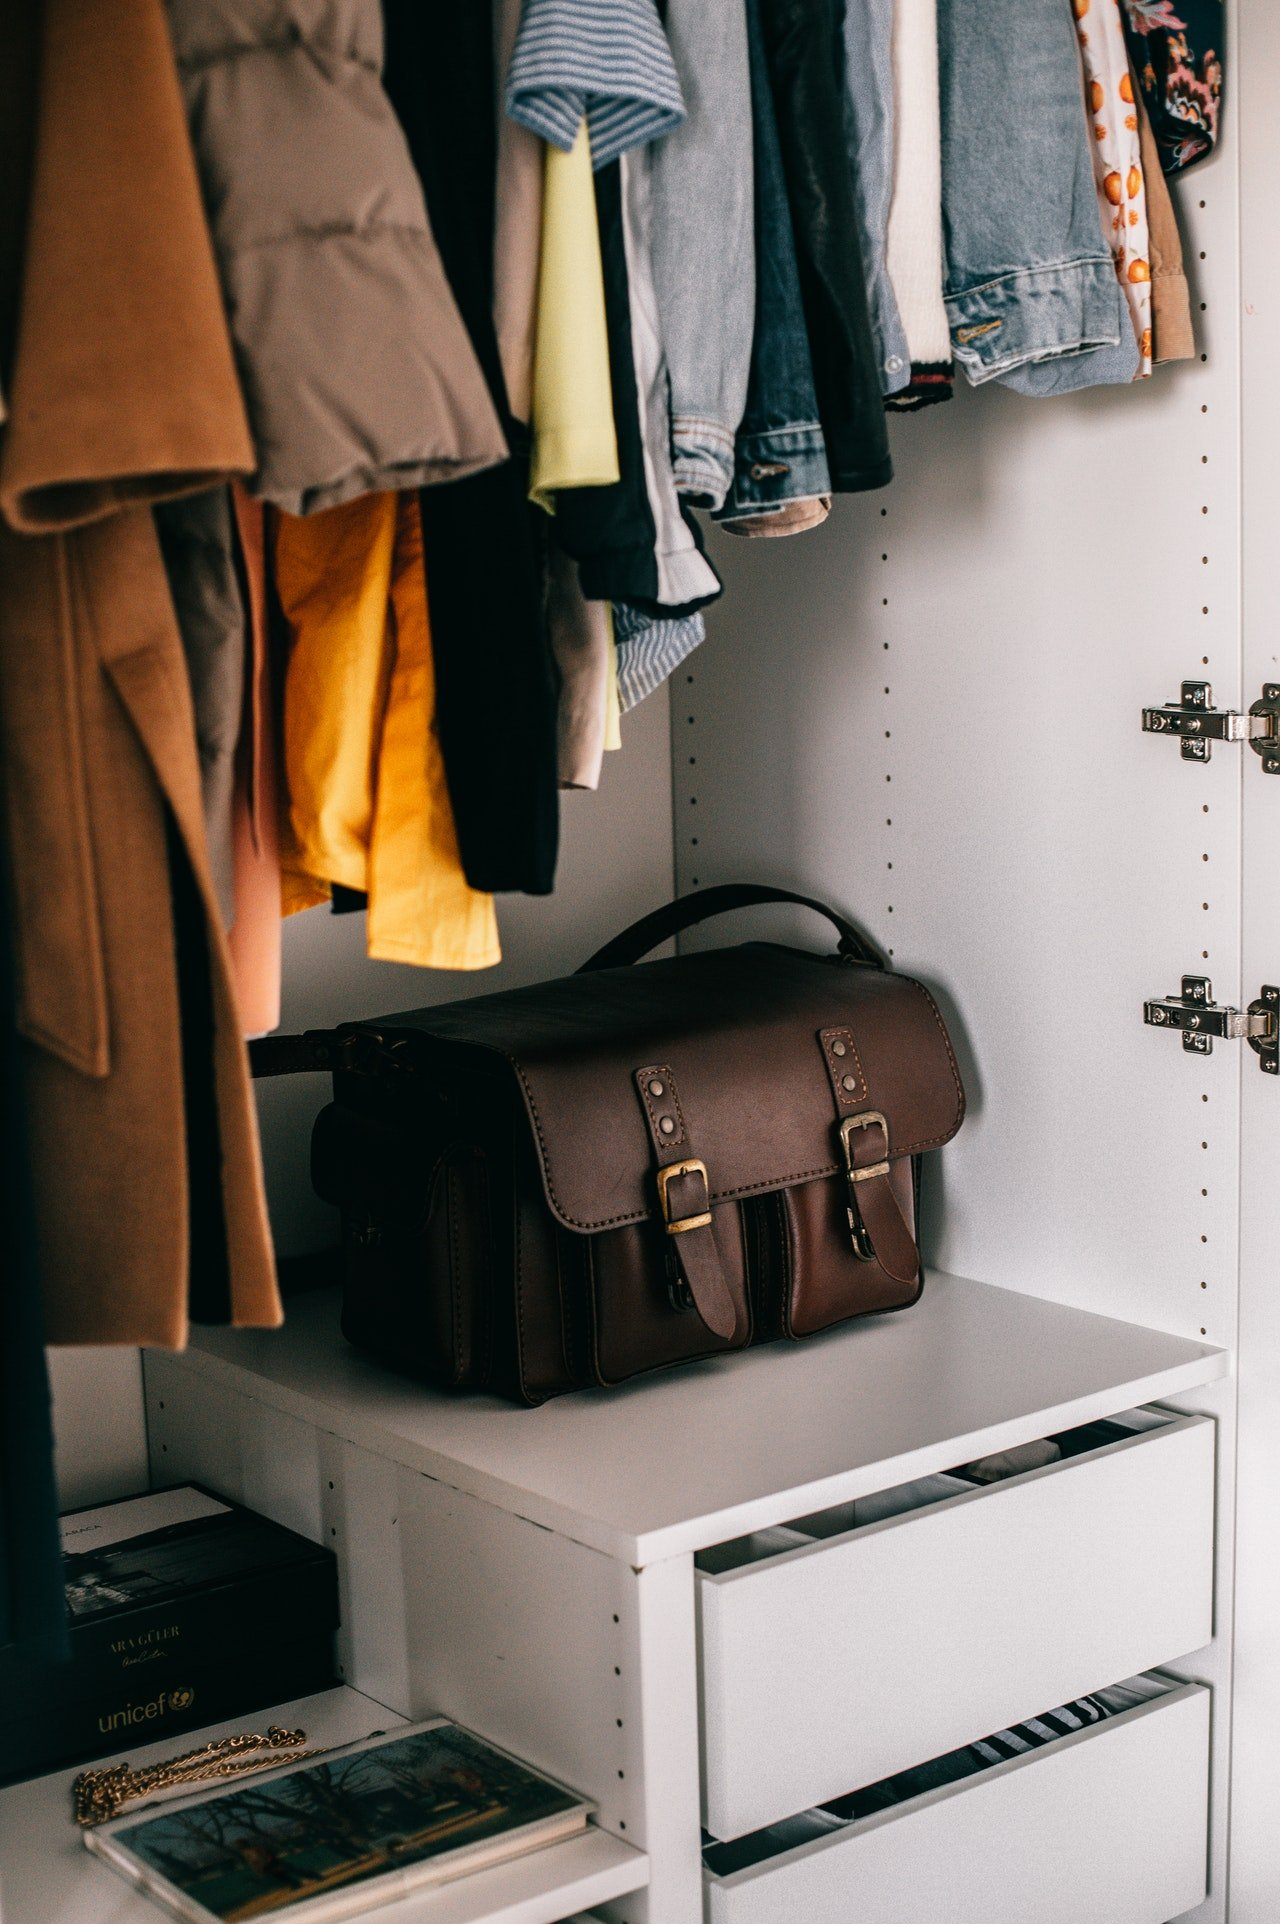 I noticed something odd in my closet. | Source: Pexels